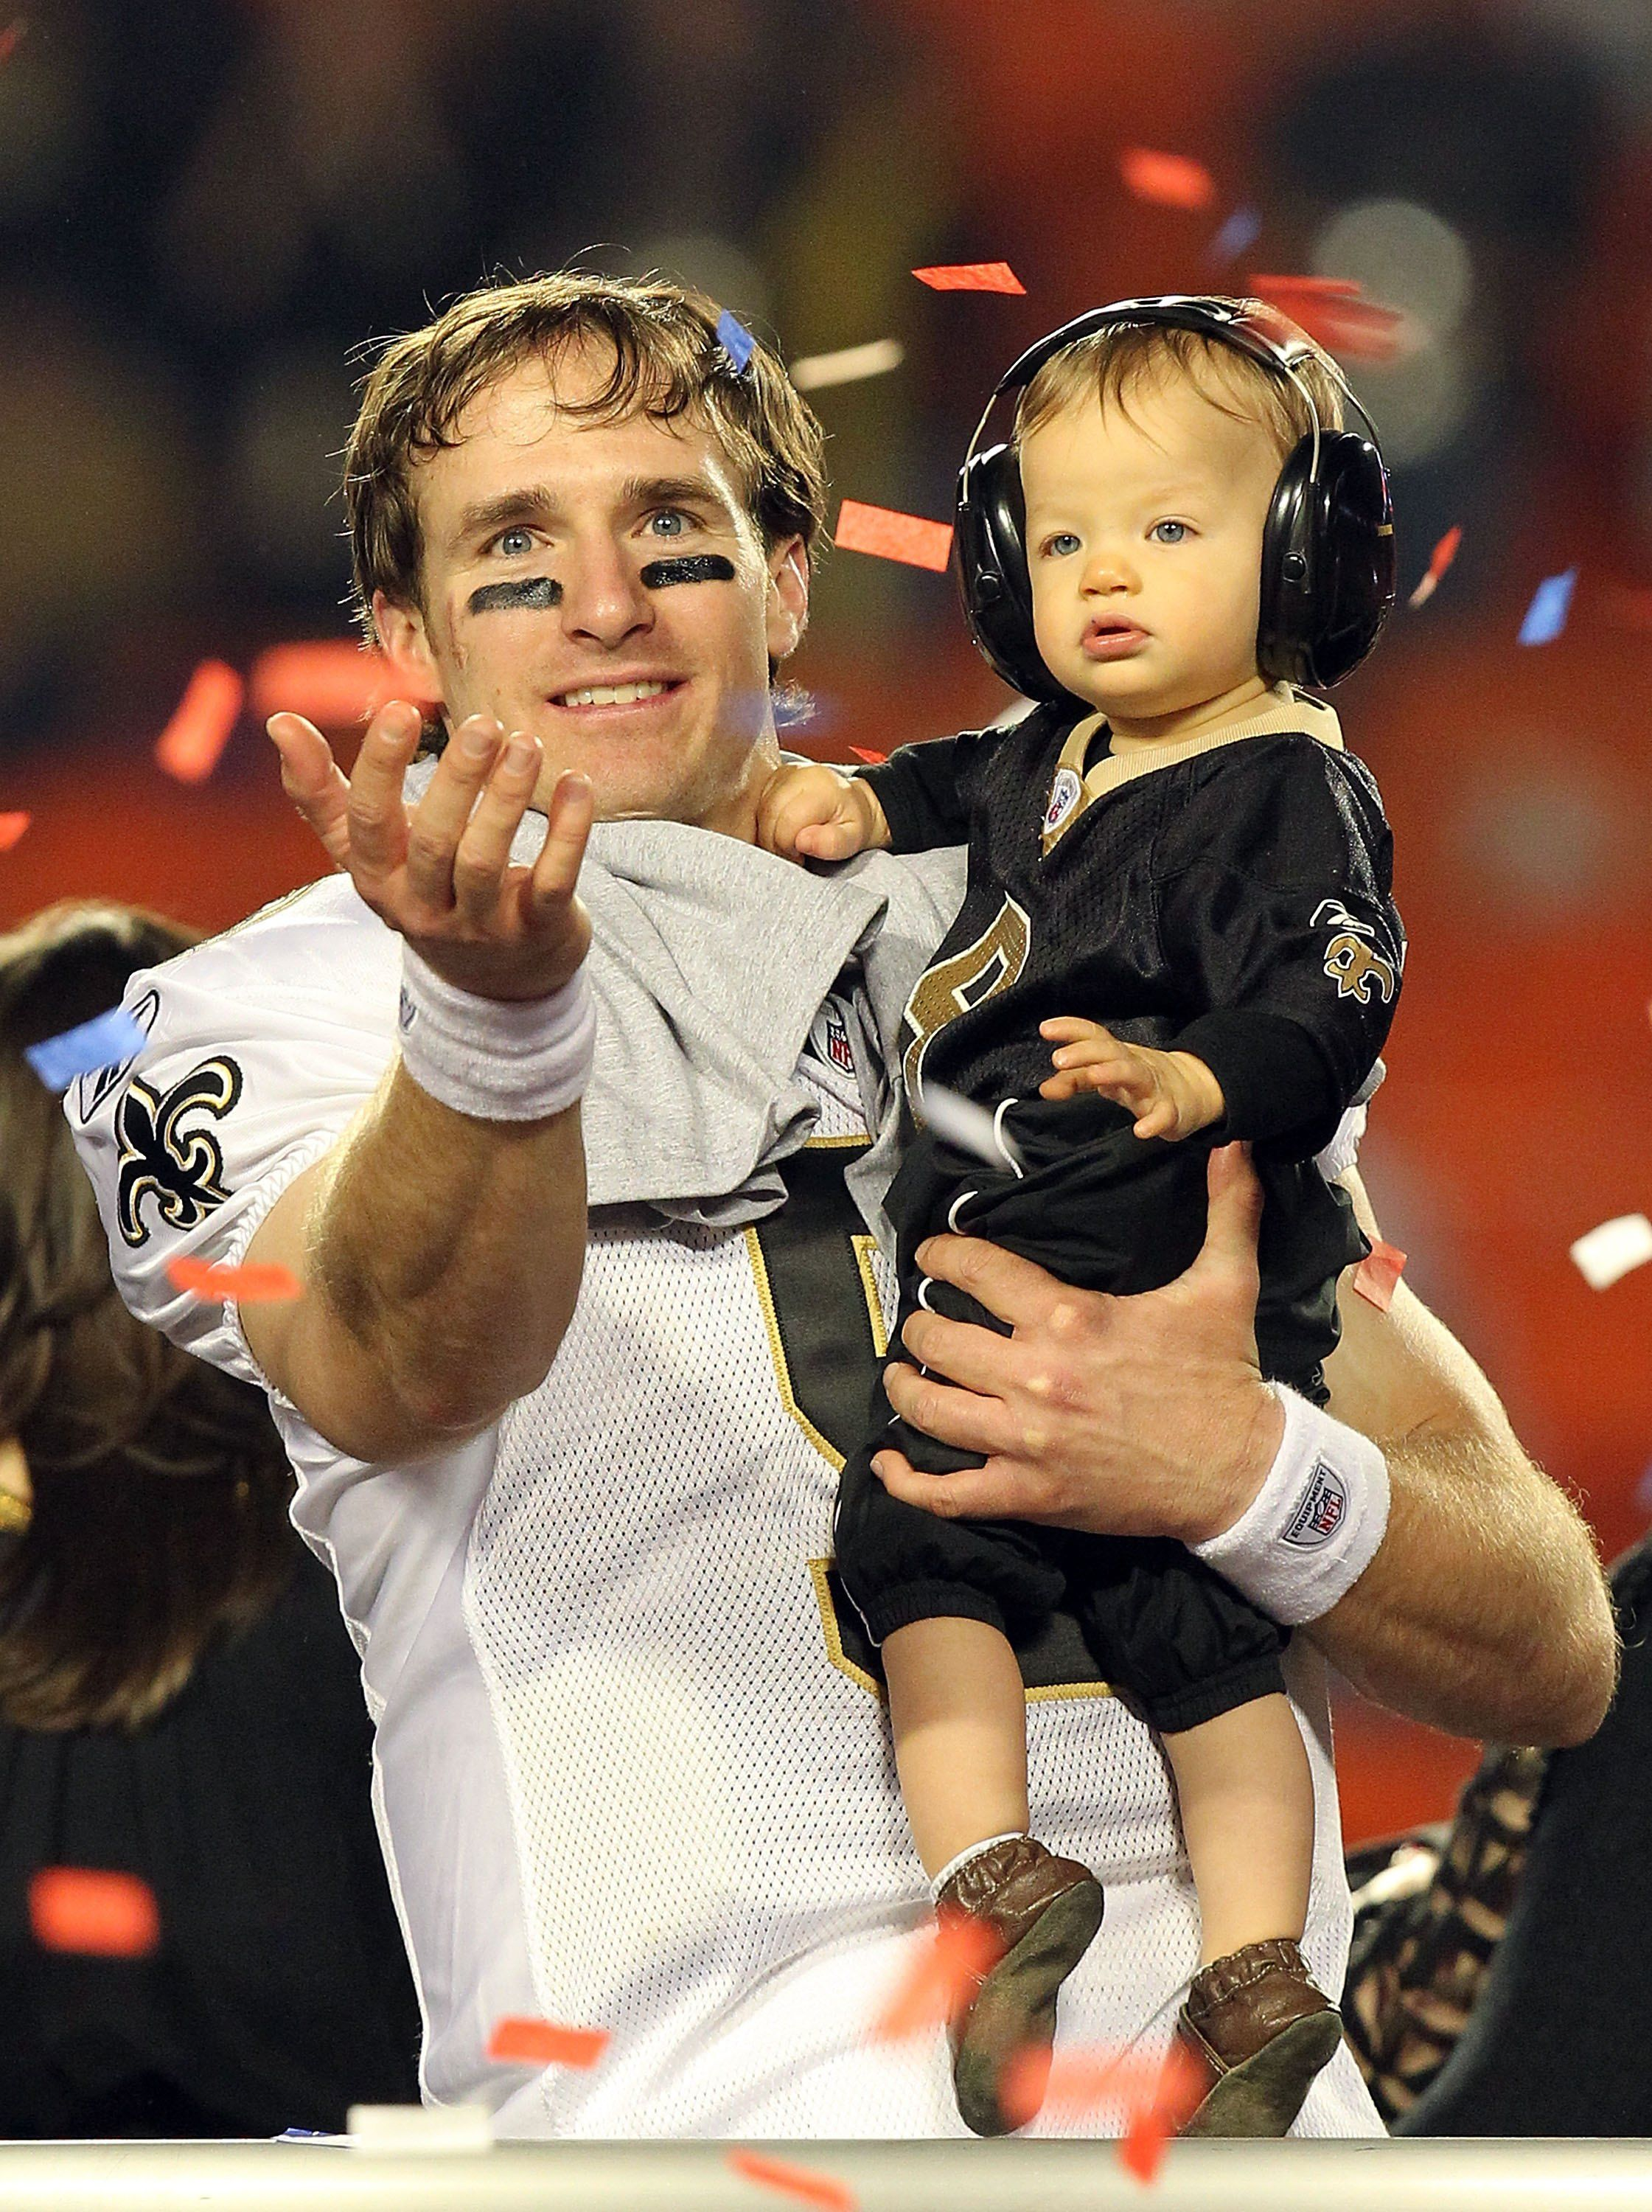 The 20 Sexiest Nfl Players We Want Playing In Our Field New Orleans Saints Father S Day Specials Athlete